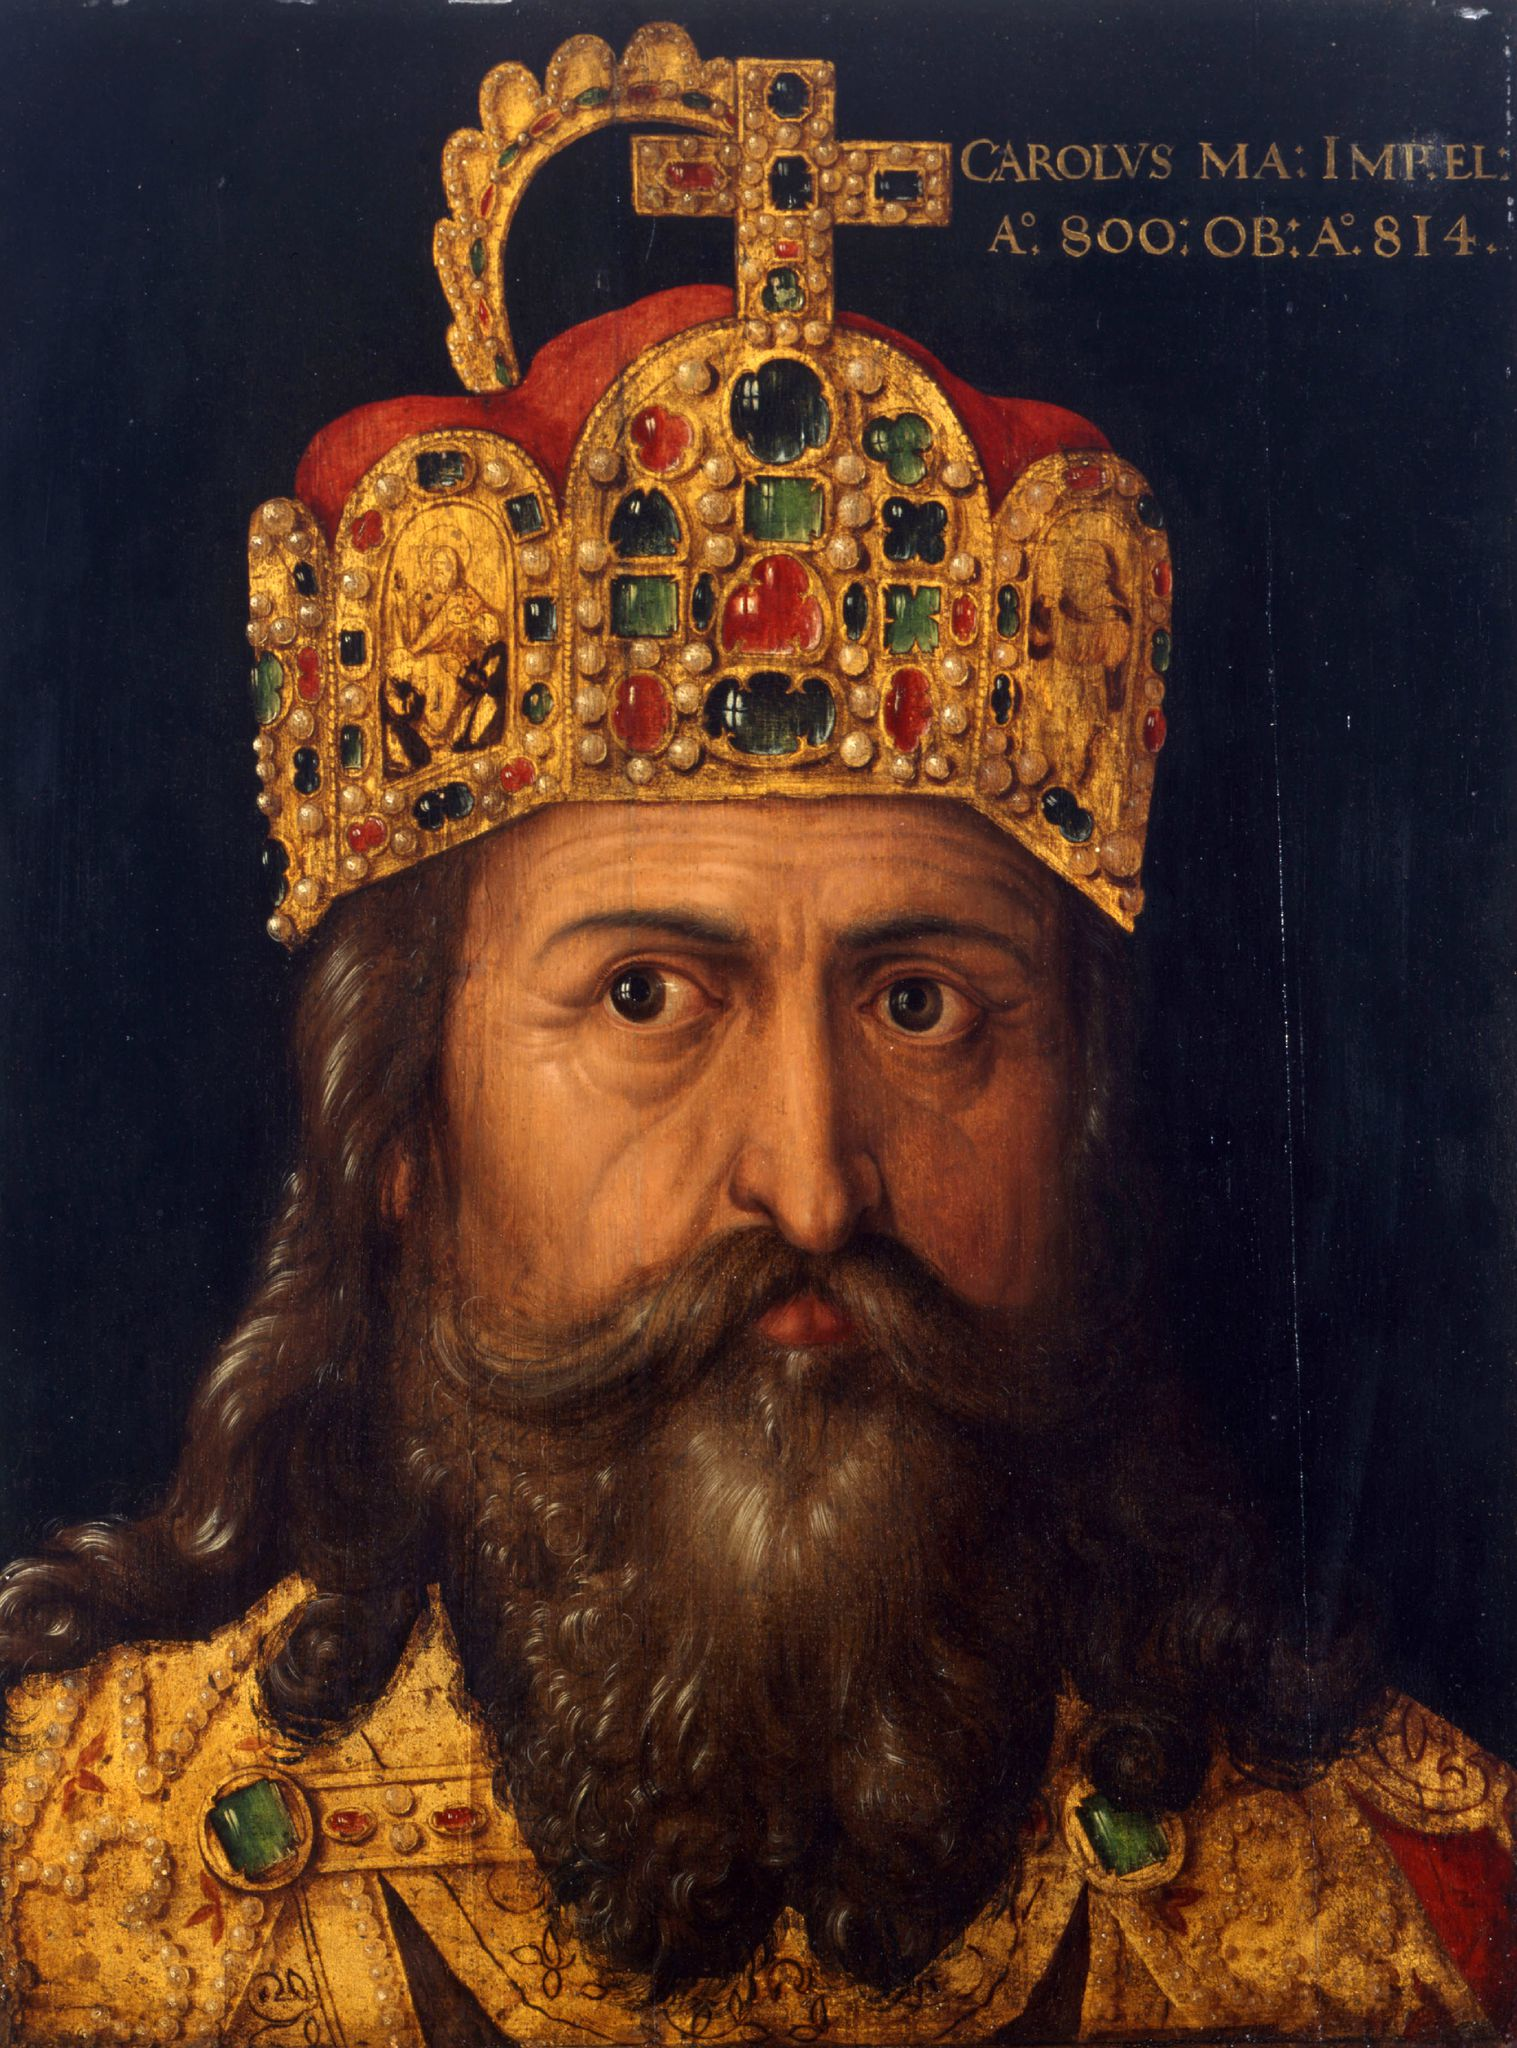 an introduction to the life of charlemagne charles the great Charlemagne or charles the great[a] , numbered charles i, was king of the  franks  in return for their lives, the lombards surrendered and opened the  gates in.